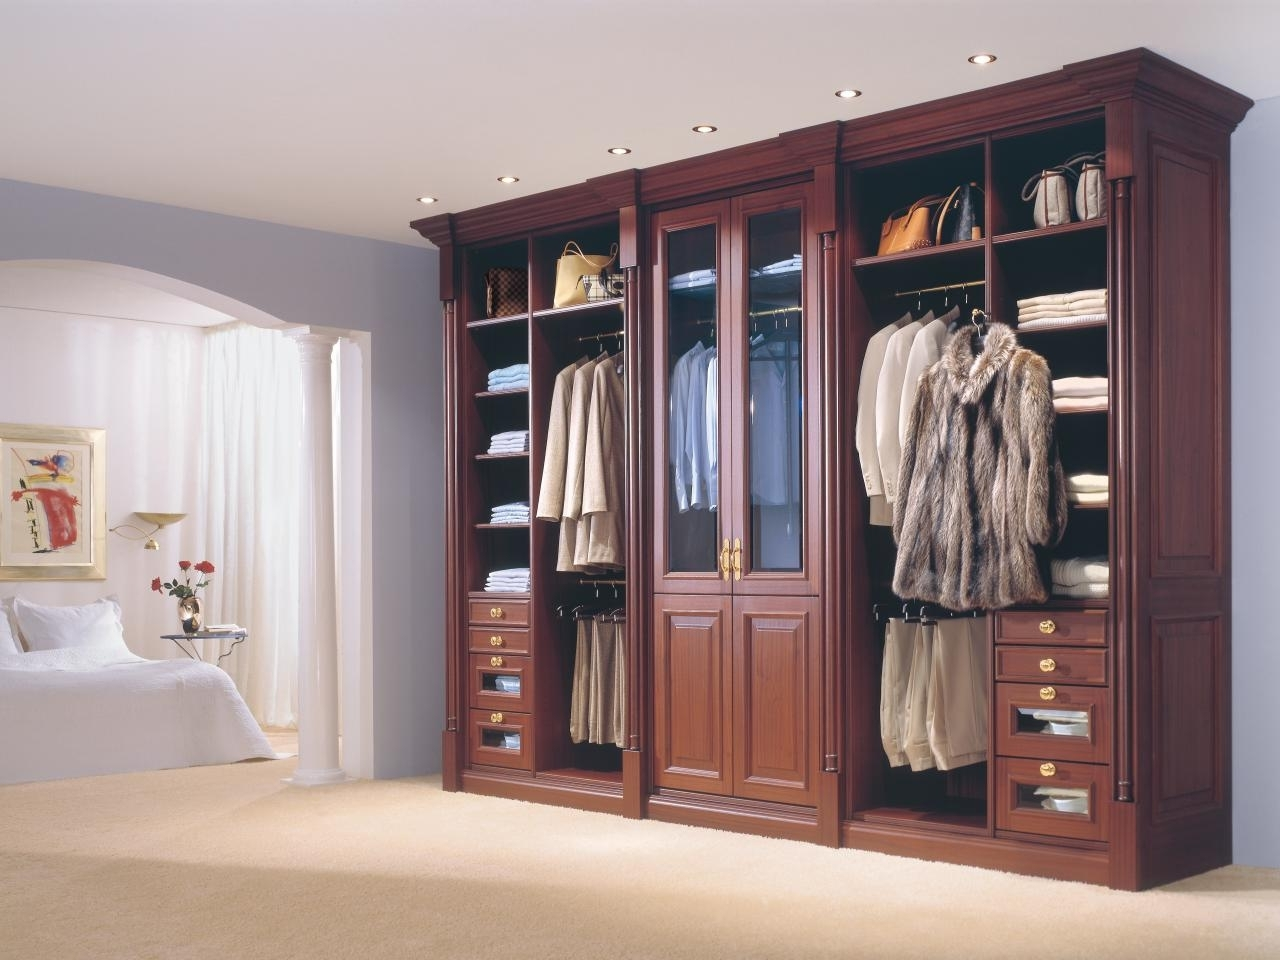 Hgtv Pertaining To Mobile Wardrobes Cabinets (View 3 of 15)